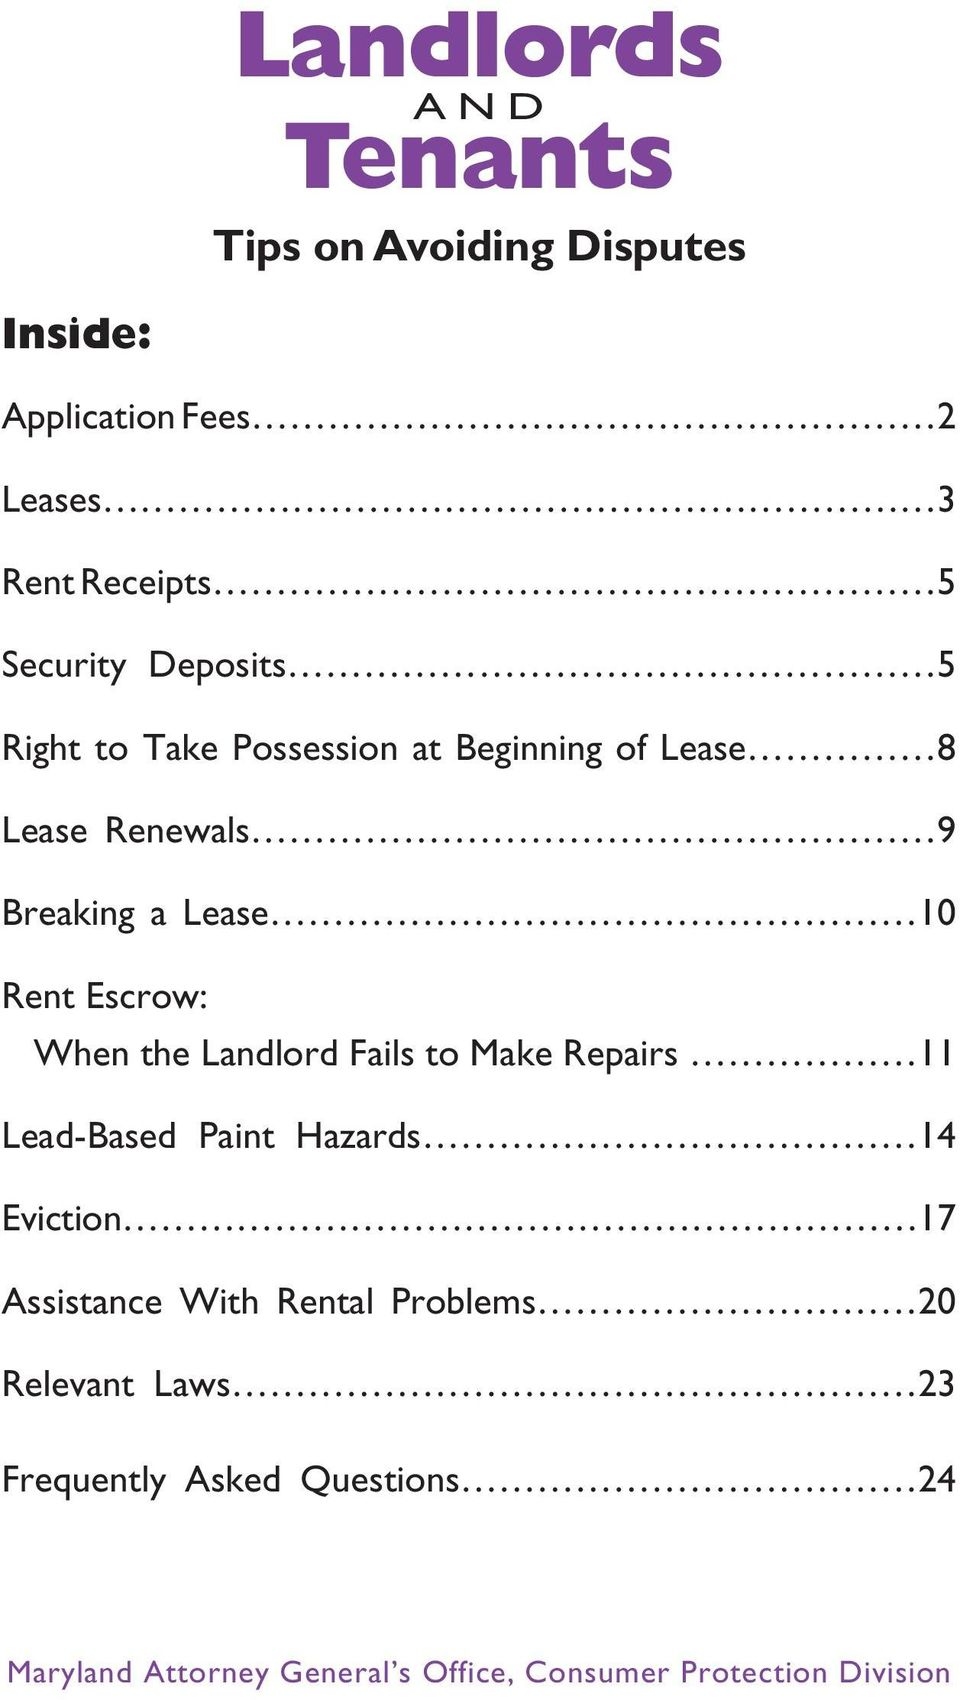 When the Landlord Fails to Make Repairs 11 Lead-Based Paint Hazards 14 Eviction 17 Assistance With Rental